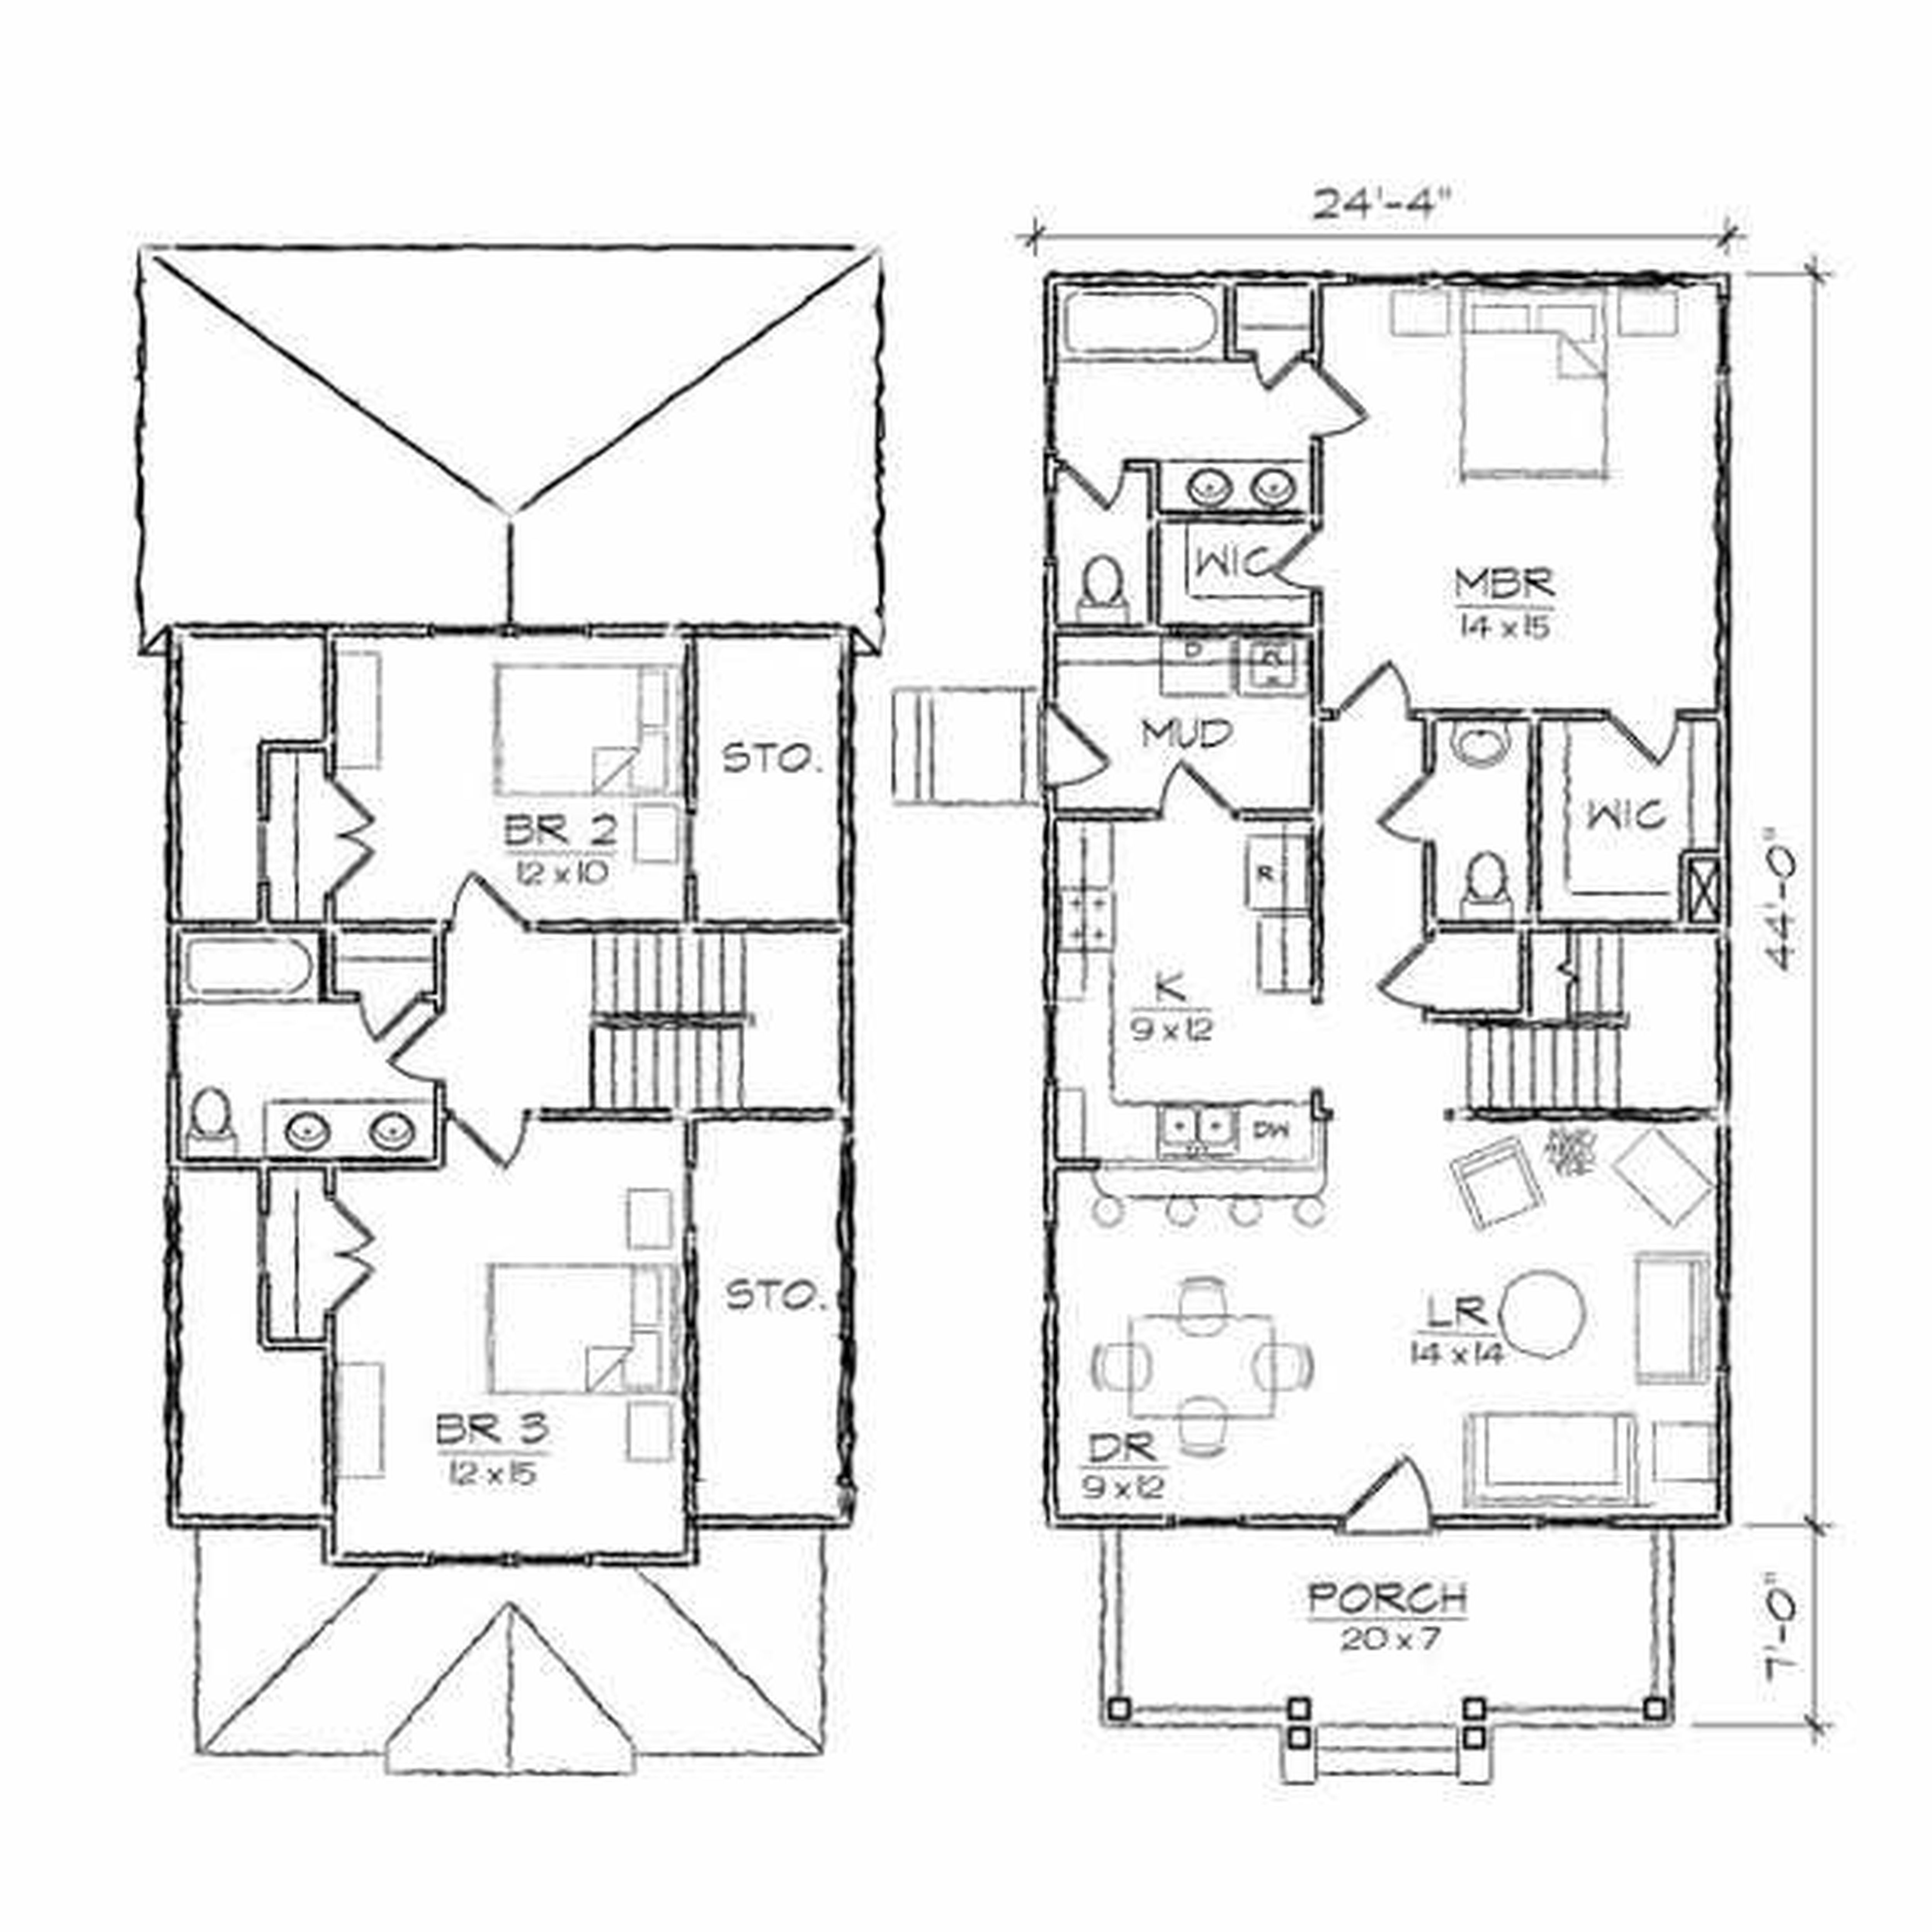 house pictures drawing at getdrawings free for personal use Electrical Outlet Wiring Diagram 5000x5000 architectural designs most popular plans imanada tiny rectangular